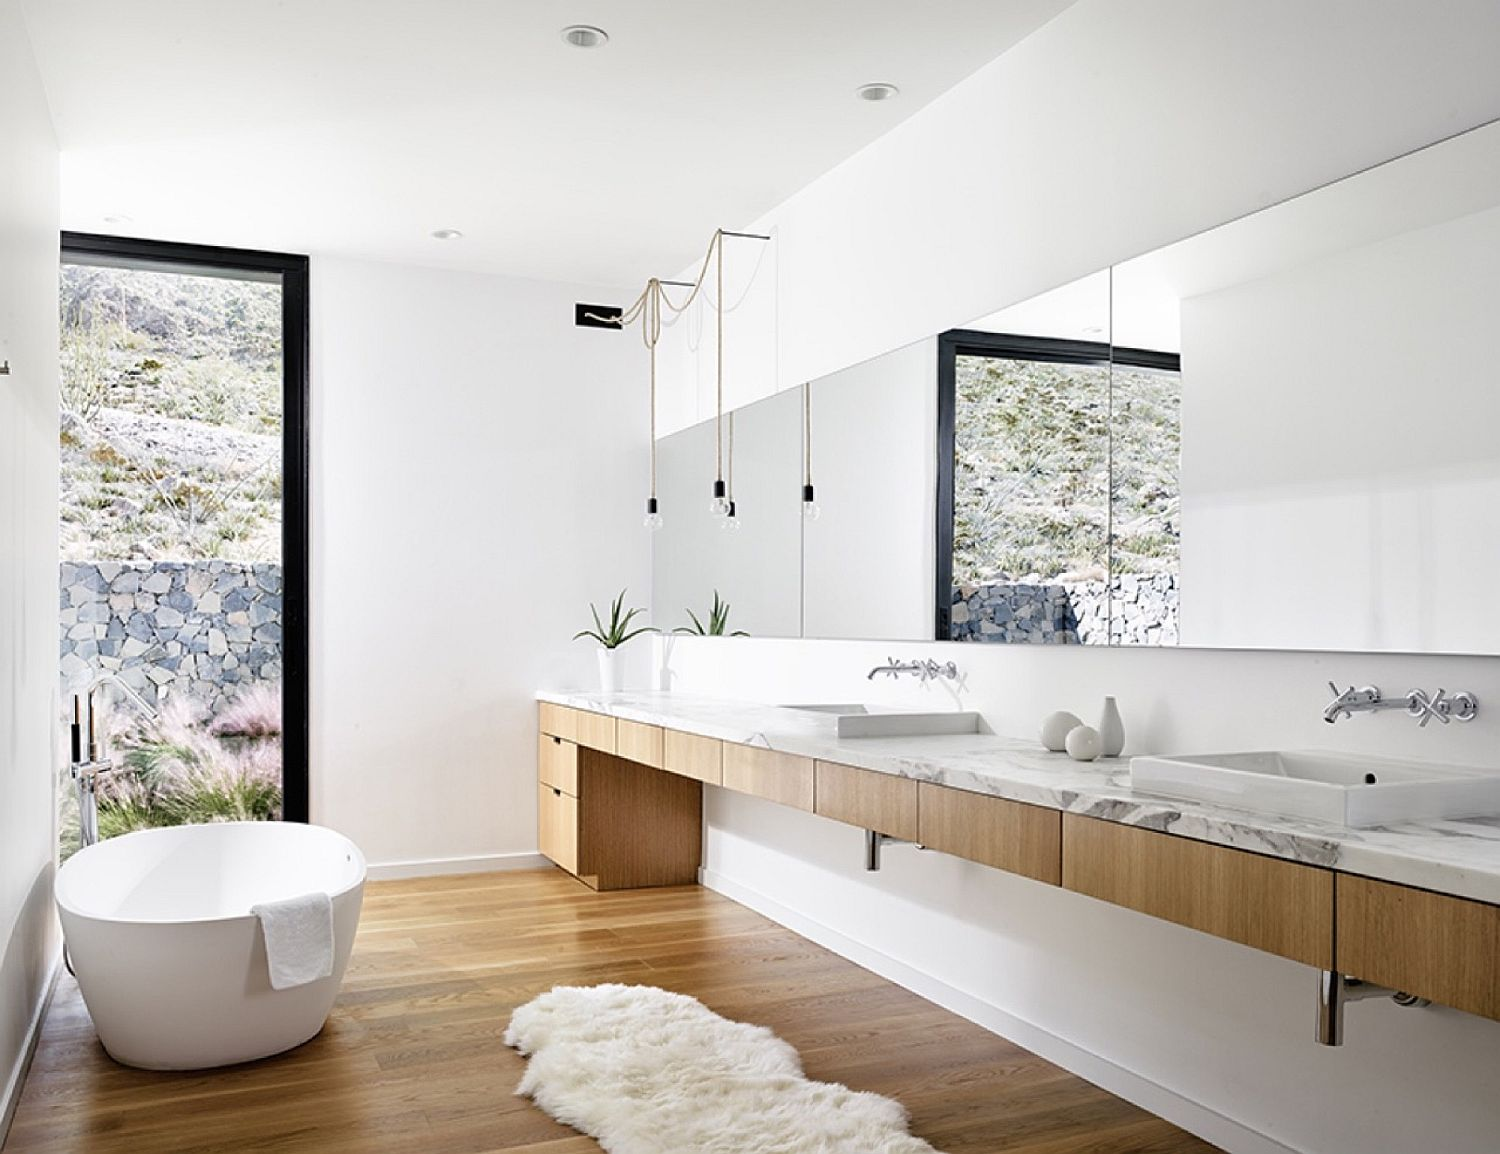 Bathroom Design And Installation Northwich : In the foothills of franklin mountains multi level family